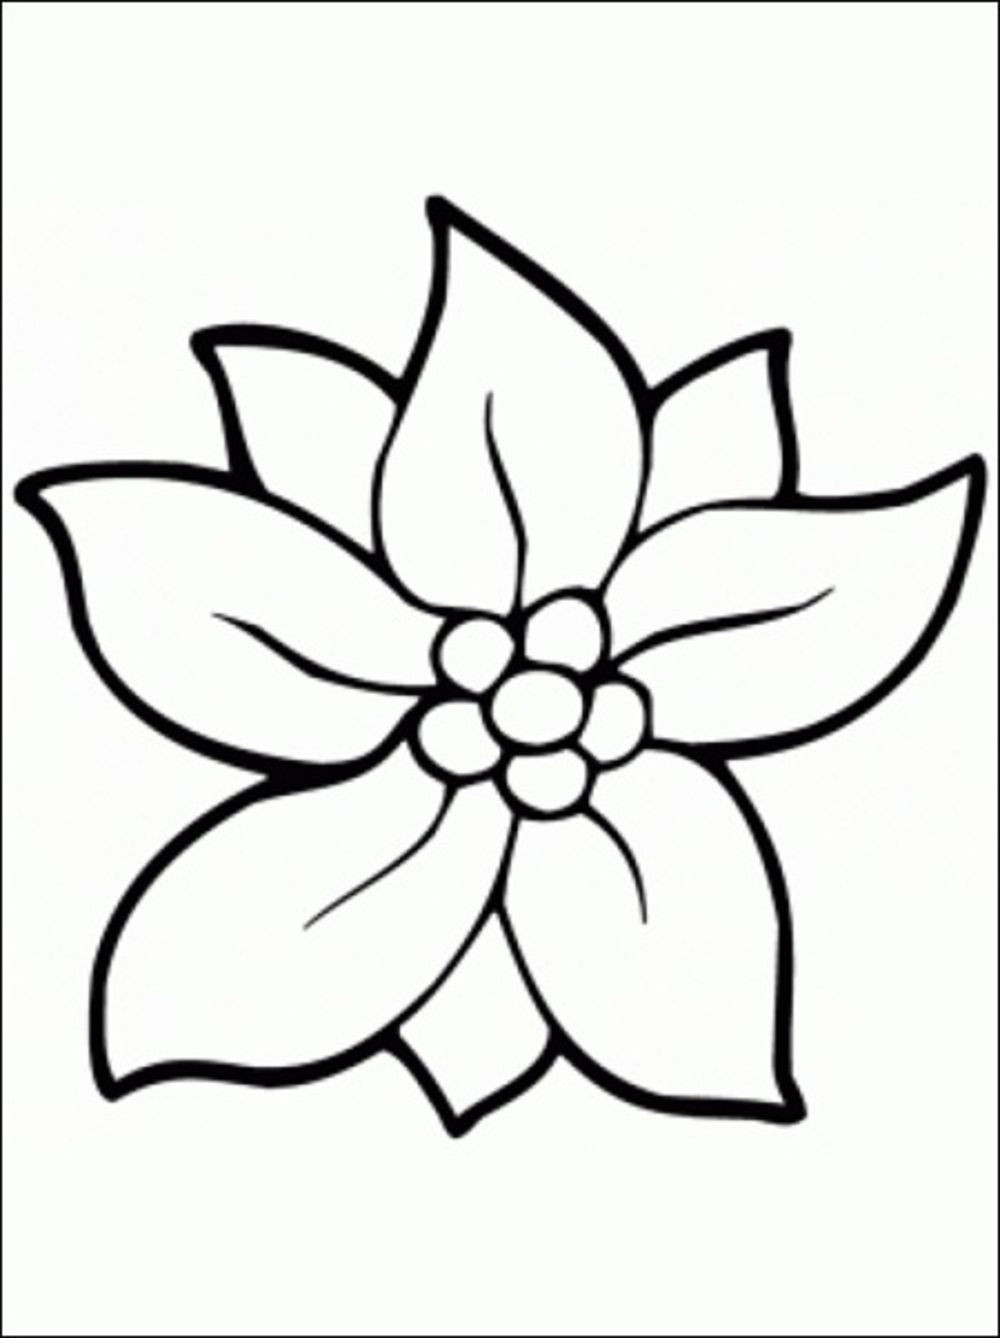 Flower Coloring Pages For Kids Medquit Free Printable Best 1000×1338 - Free Printable Flower Coloring Pages